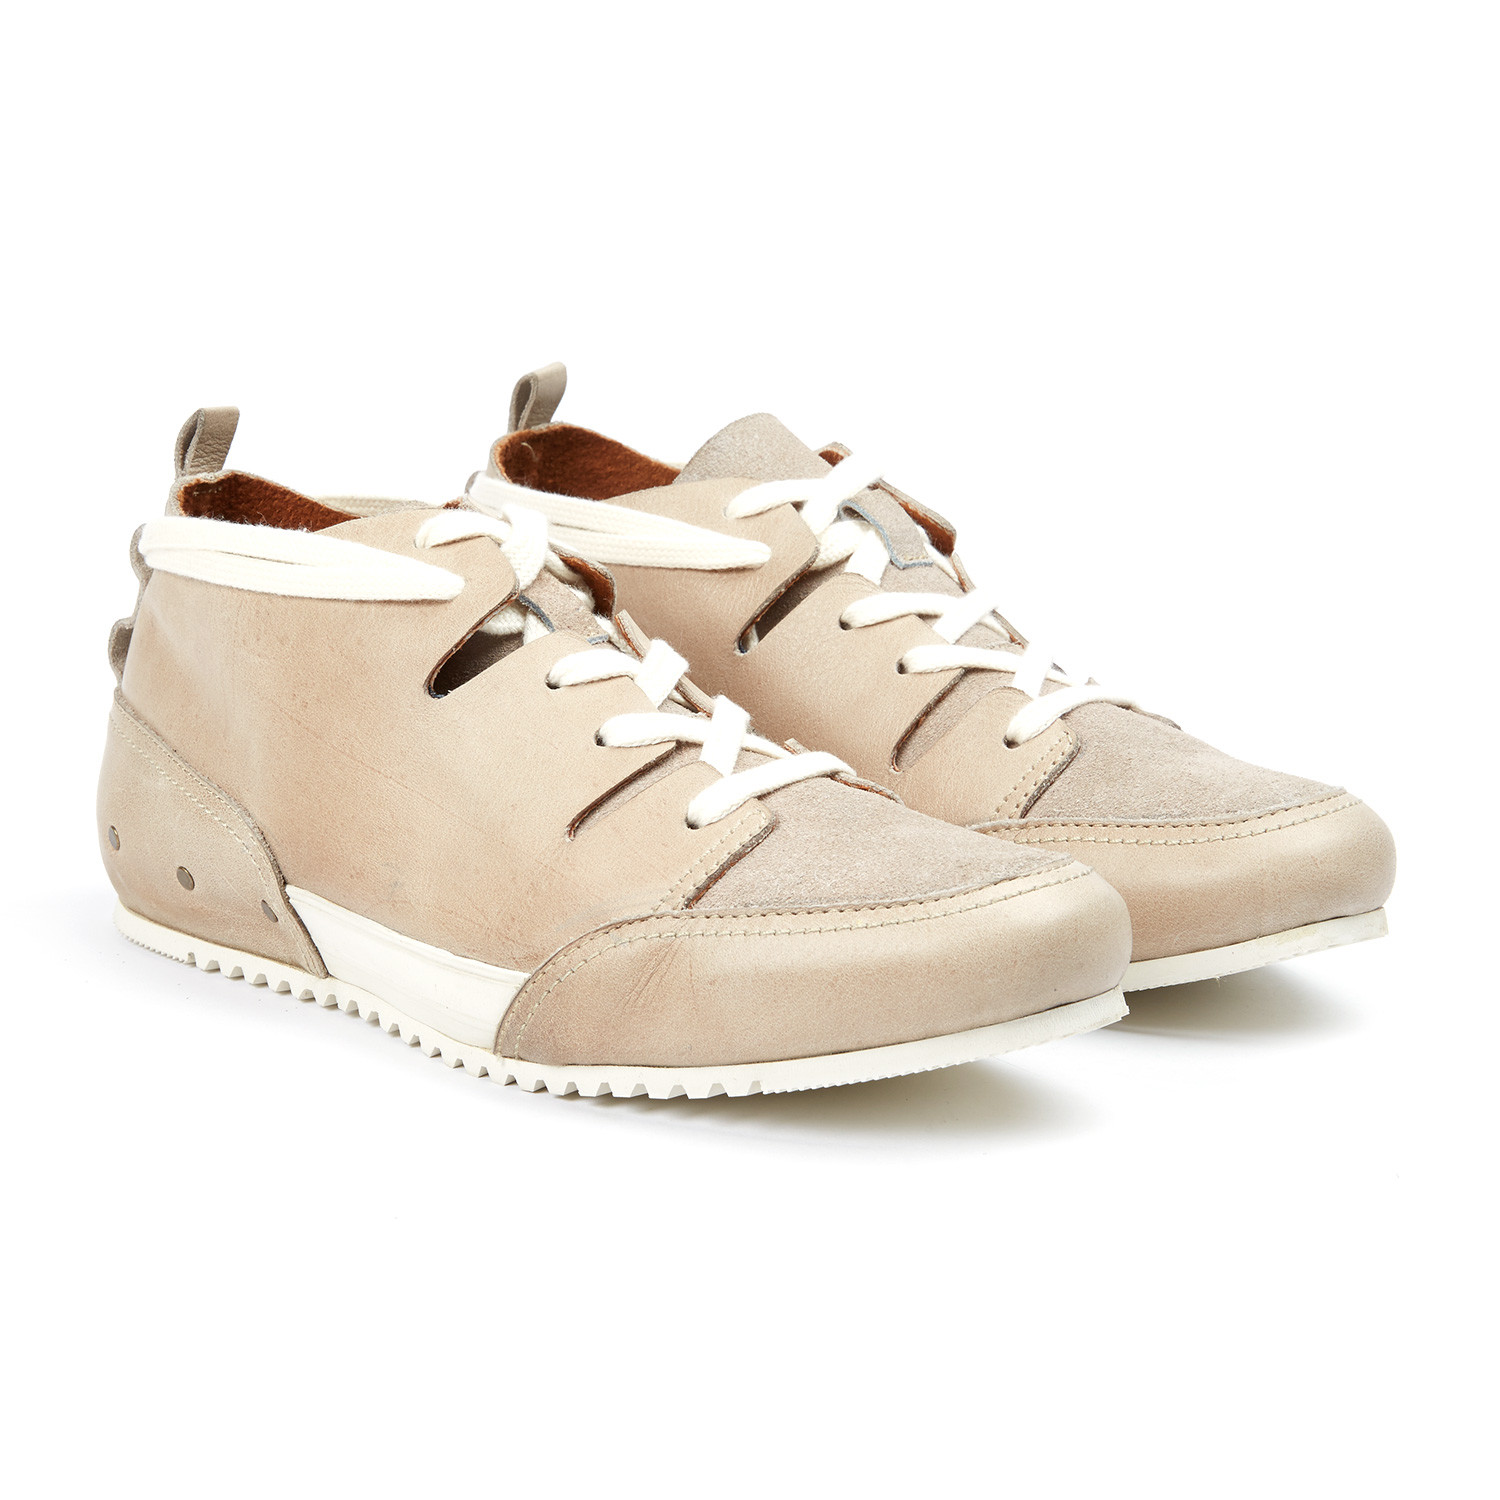 f163c2855ddebc Champs Leather Sneaker    Beige (US  7) - MCNDO - Touch of Modern